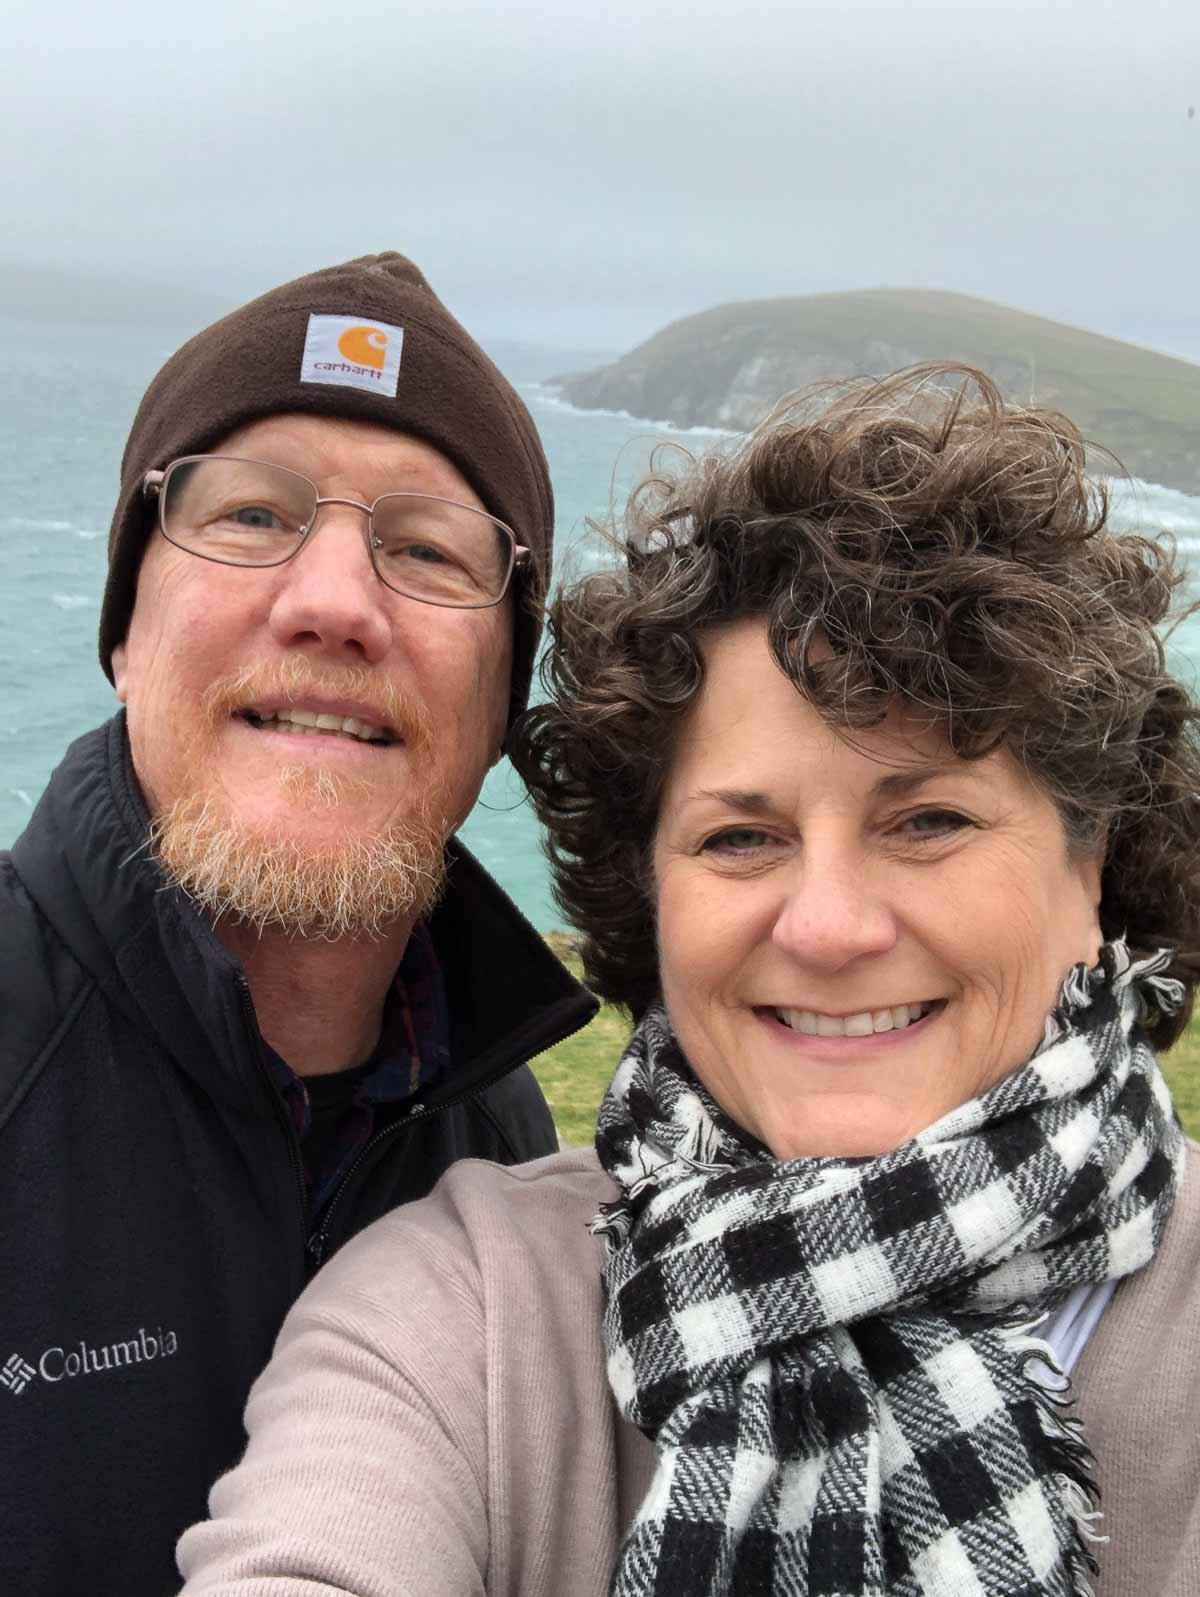 Man and woman in winter clothing facing camera with atlantic ocean and peninsula in background